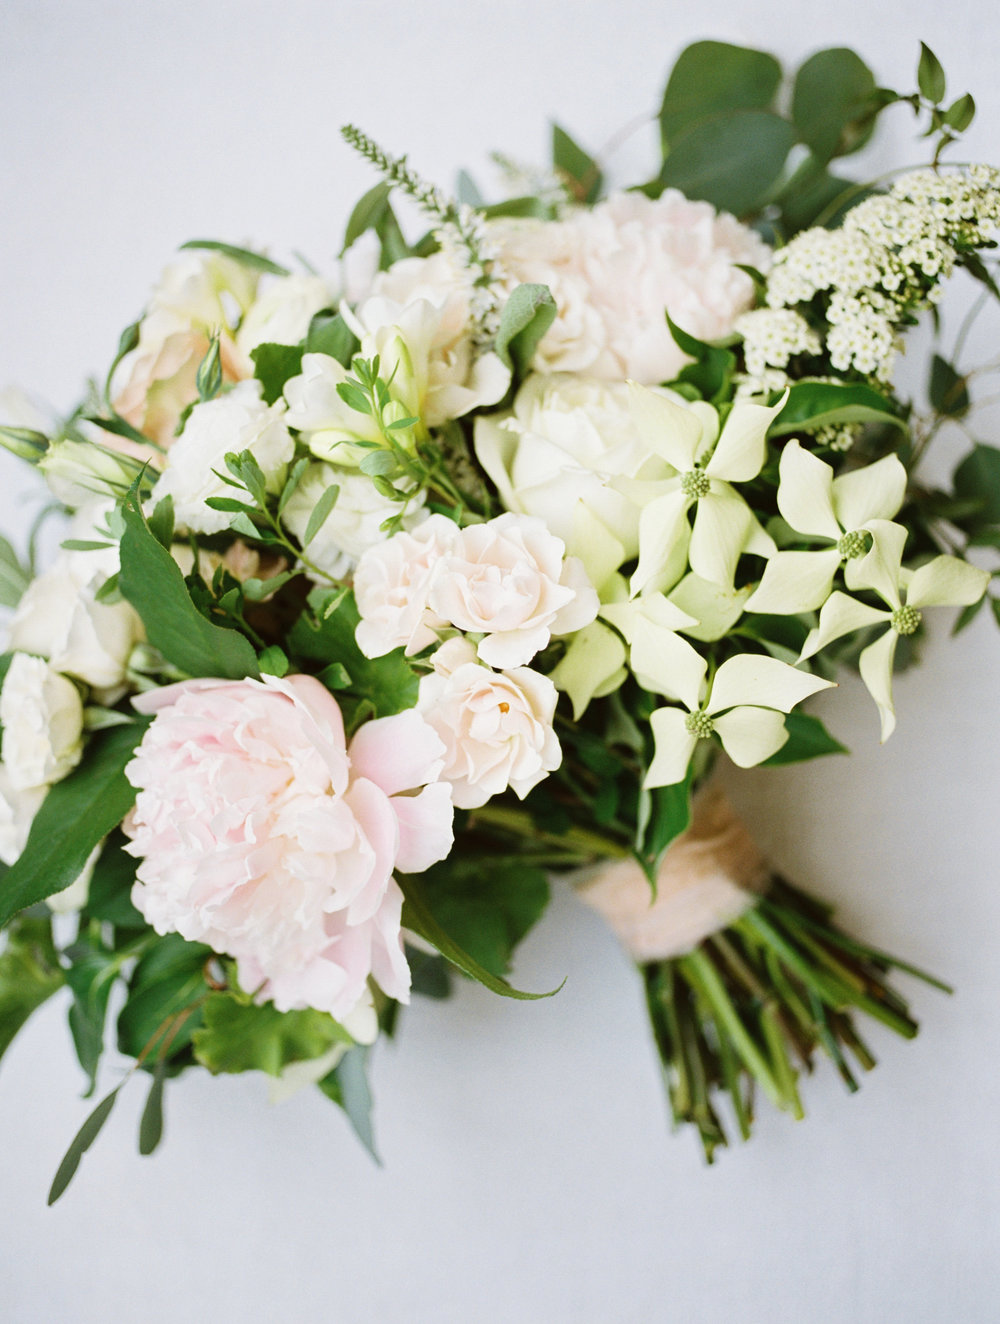 What To Look For In Your Florist -